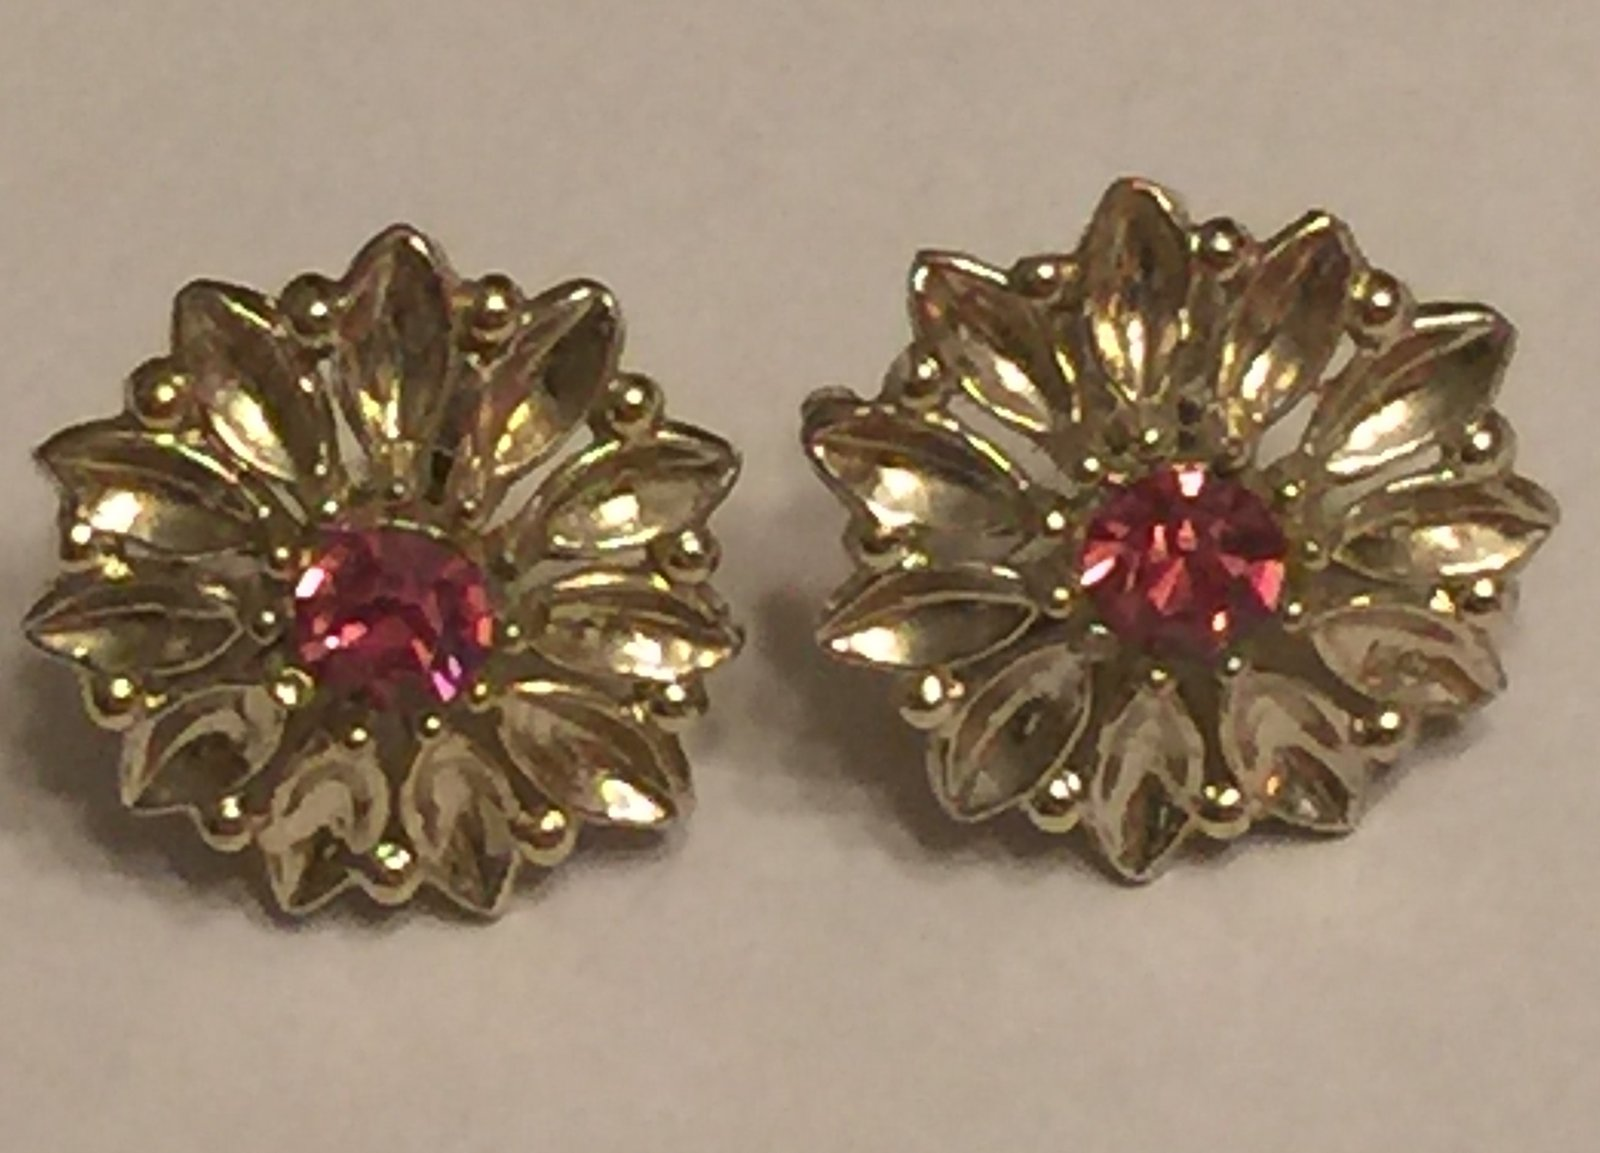 +VTG 50s Screw Back Earrings~ Gold Tone Flowers w/Deep Pink Rhinestone Centers image 2